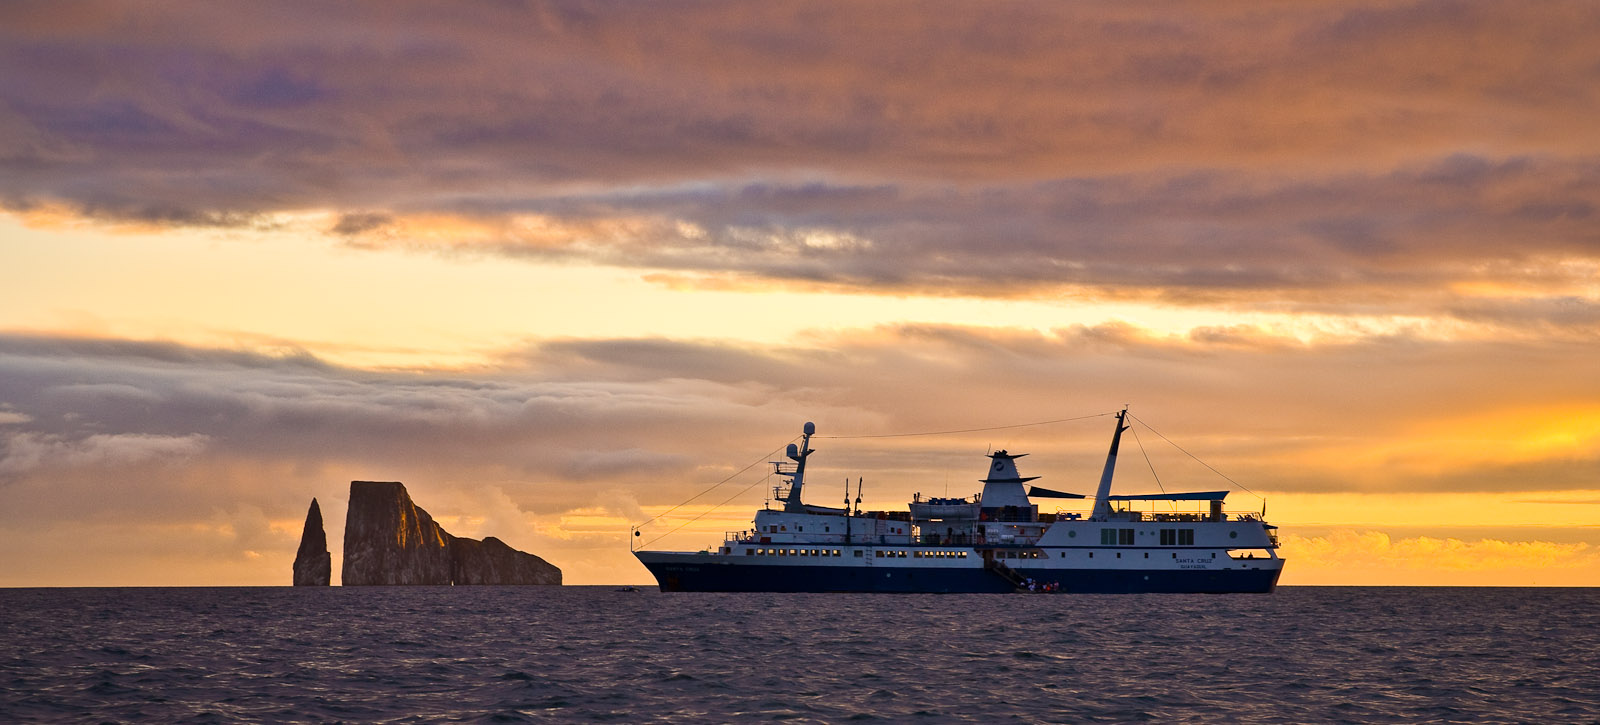 The good ship Santa Cruz anchored near Kicker Rock off San Cristobal Island. An adventure expedition organized by High Country Passage. Photo by Jay Graham